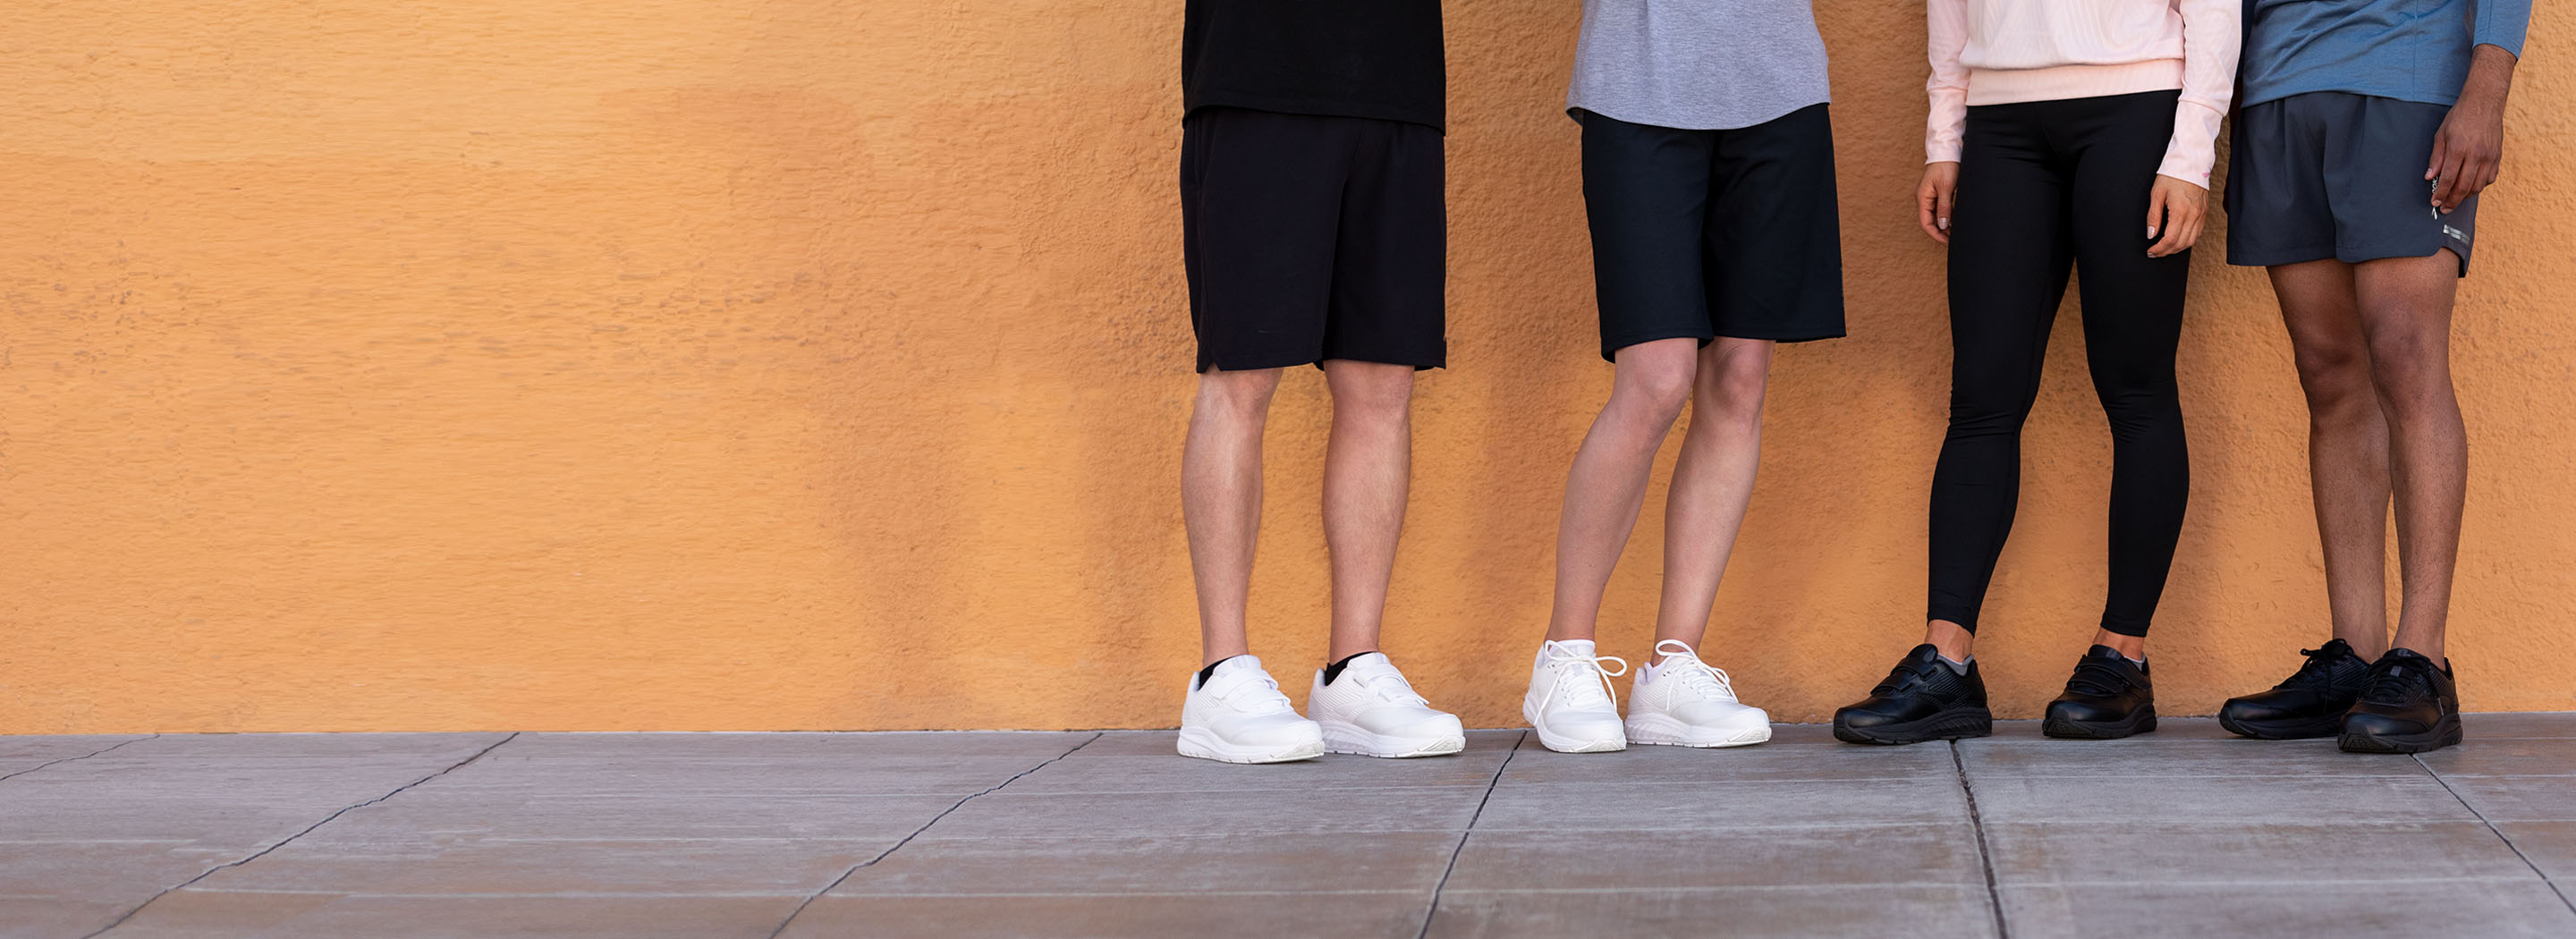 A picture of four people from the waist down wearing the Addiction Walker 2 and Addiction Walker 2 V-Strap; they are standing in front of a bright orange wall